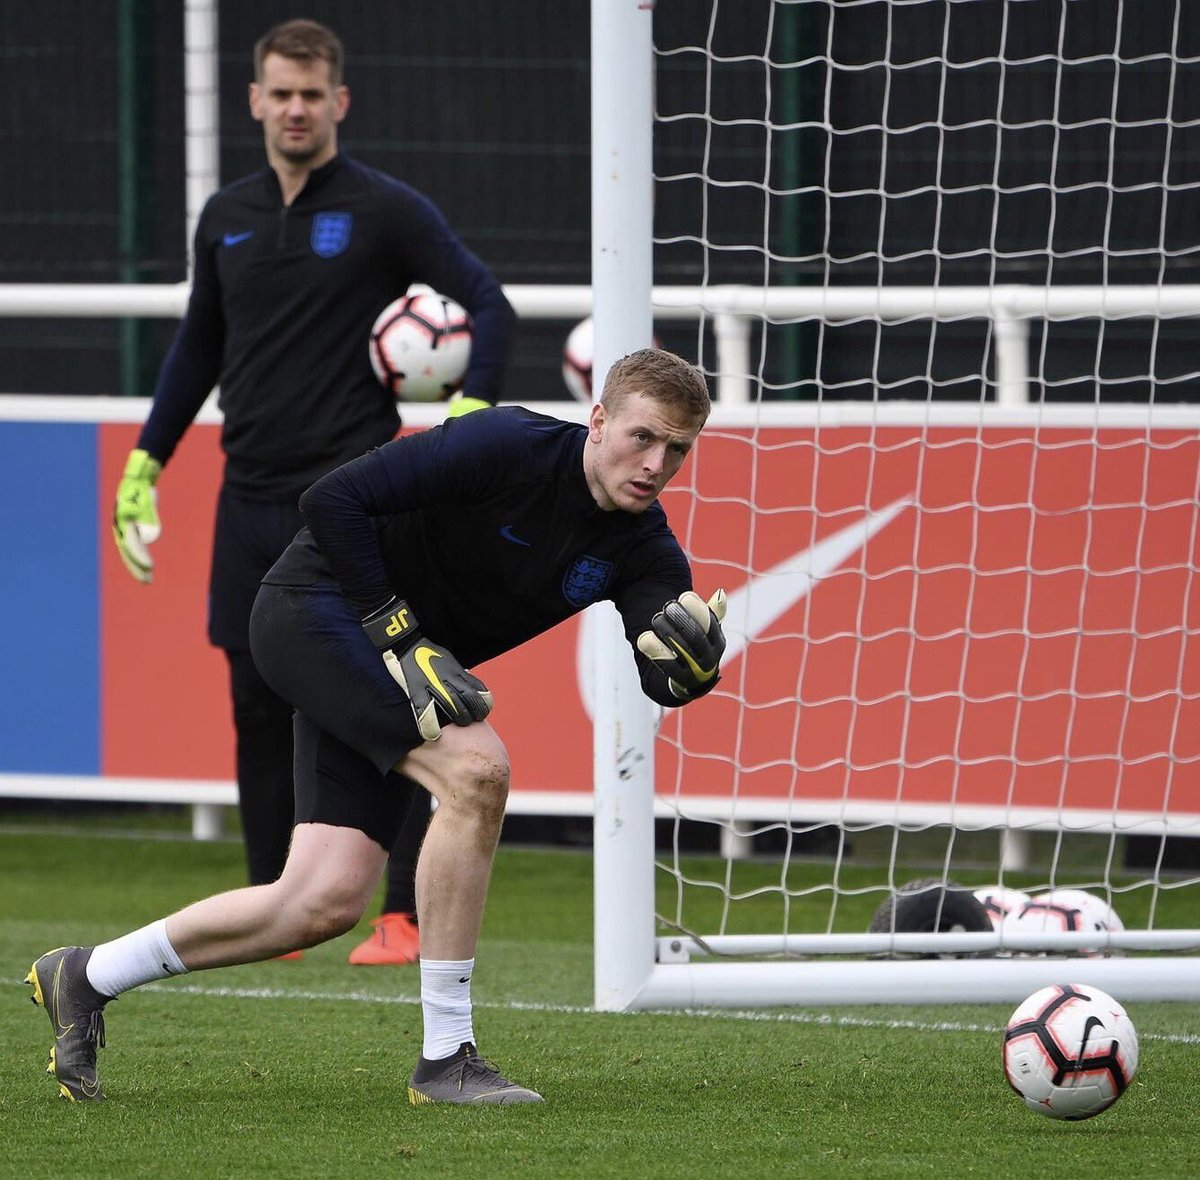 """""""Look at the state of his throw with them little arms. I'm deffo England's number one.""""  #twitterclarets #threelions<br>http://pic.twitter.com/l6krpJIScy"""